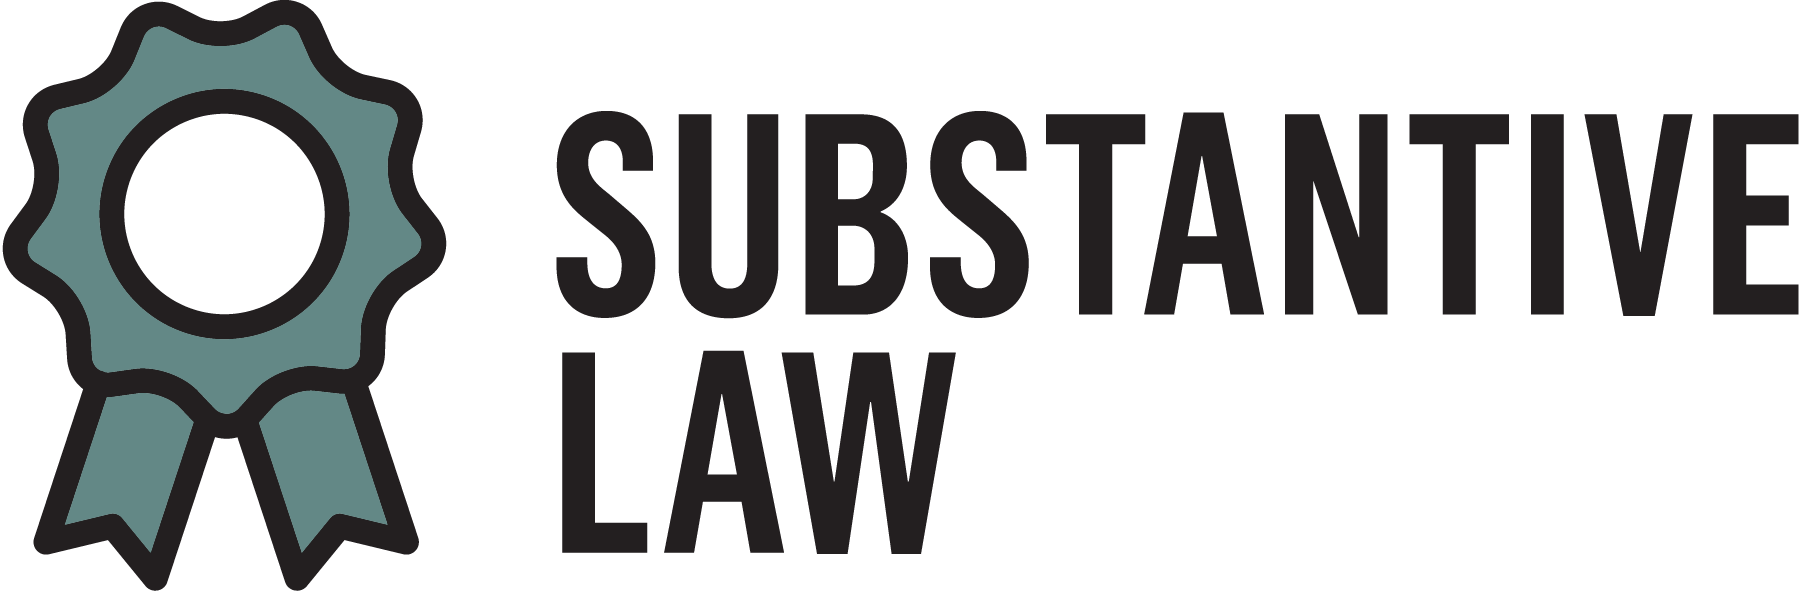 Substantive law